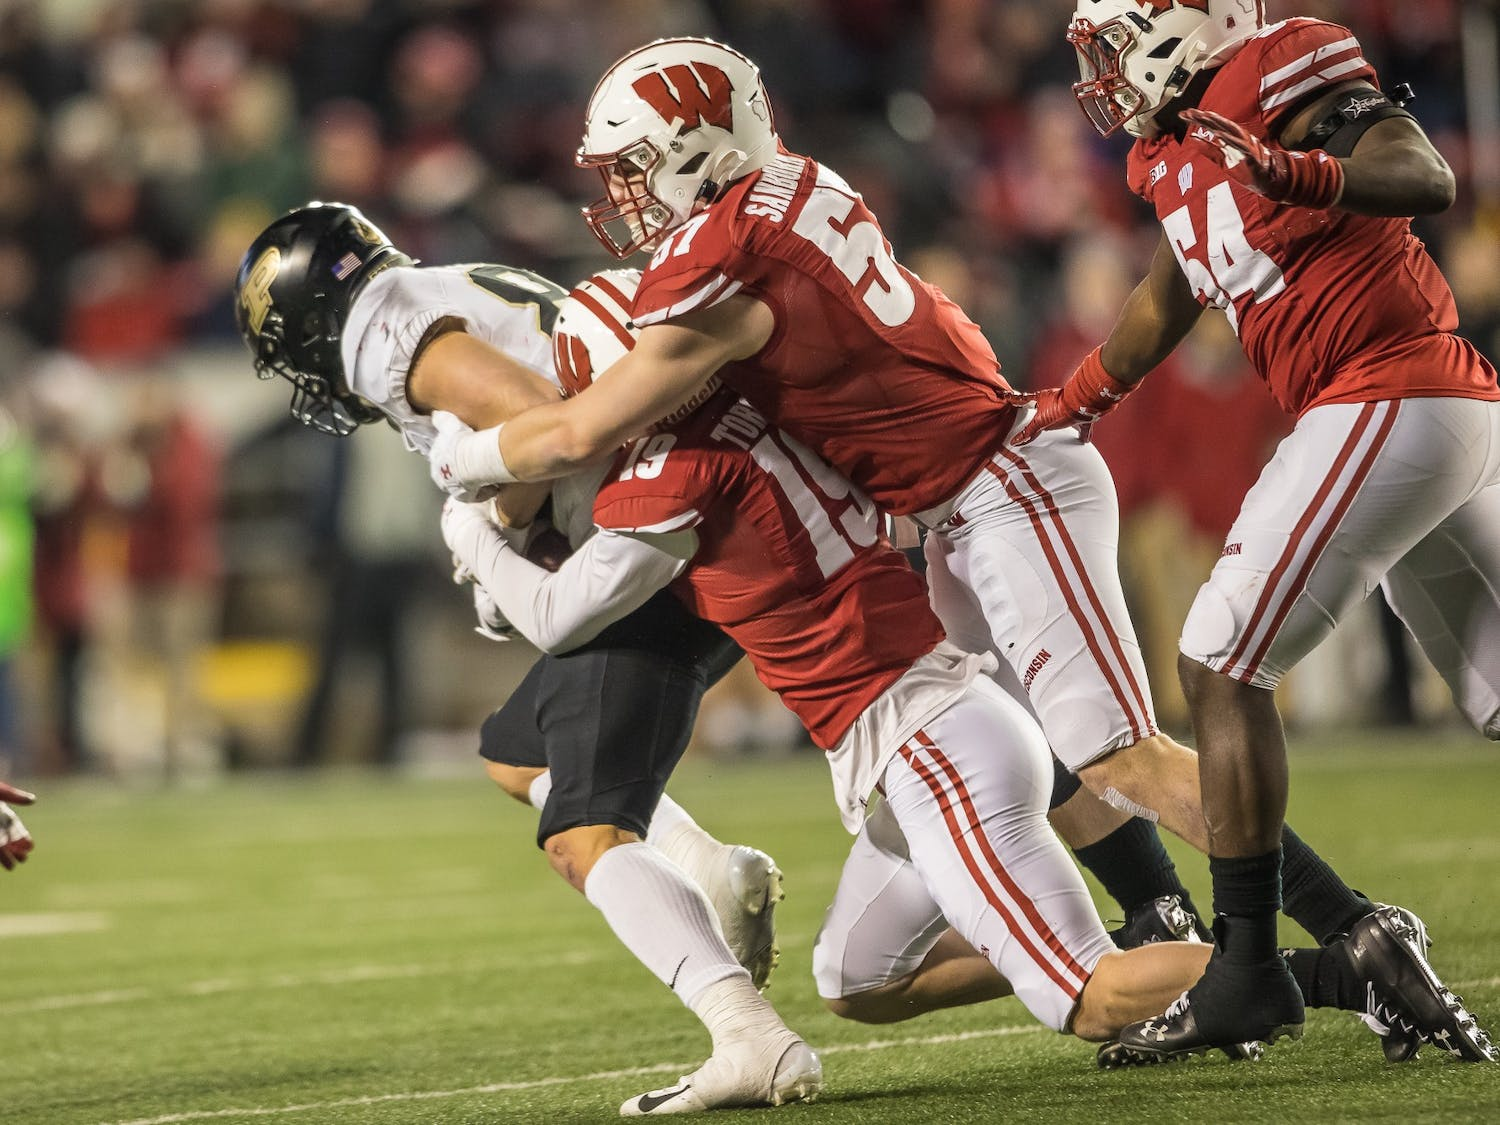 Sanborn makes a tackle with Chris Orr, who graduated and went to the NFL's Carolina Panthers.